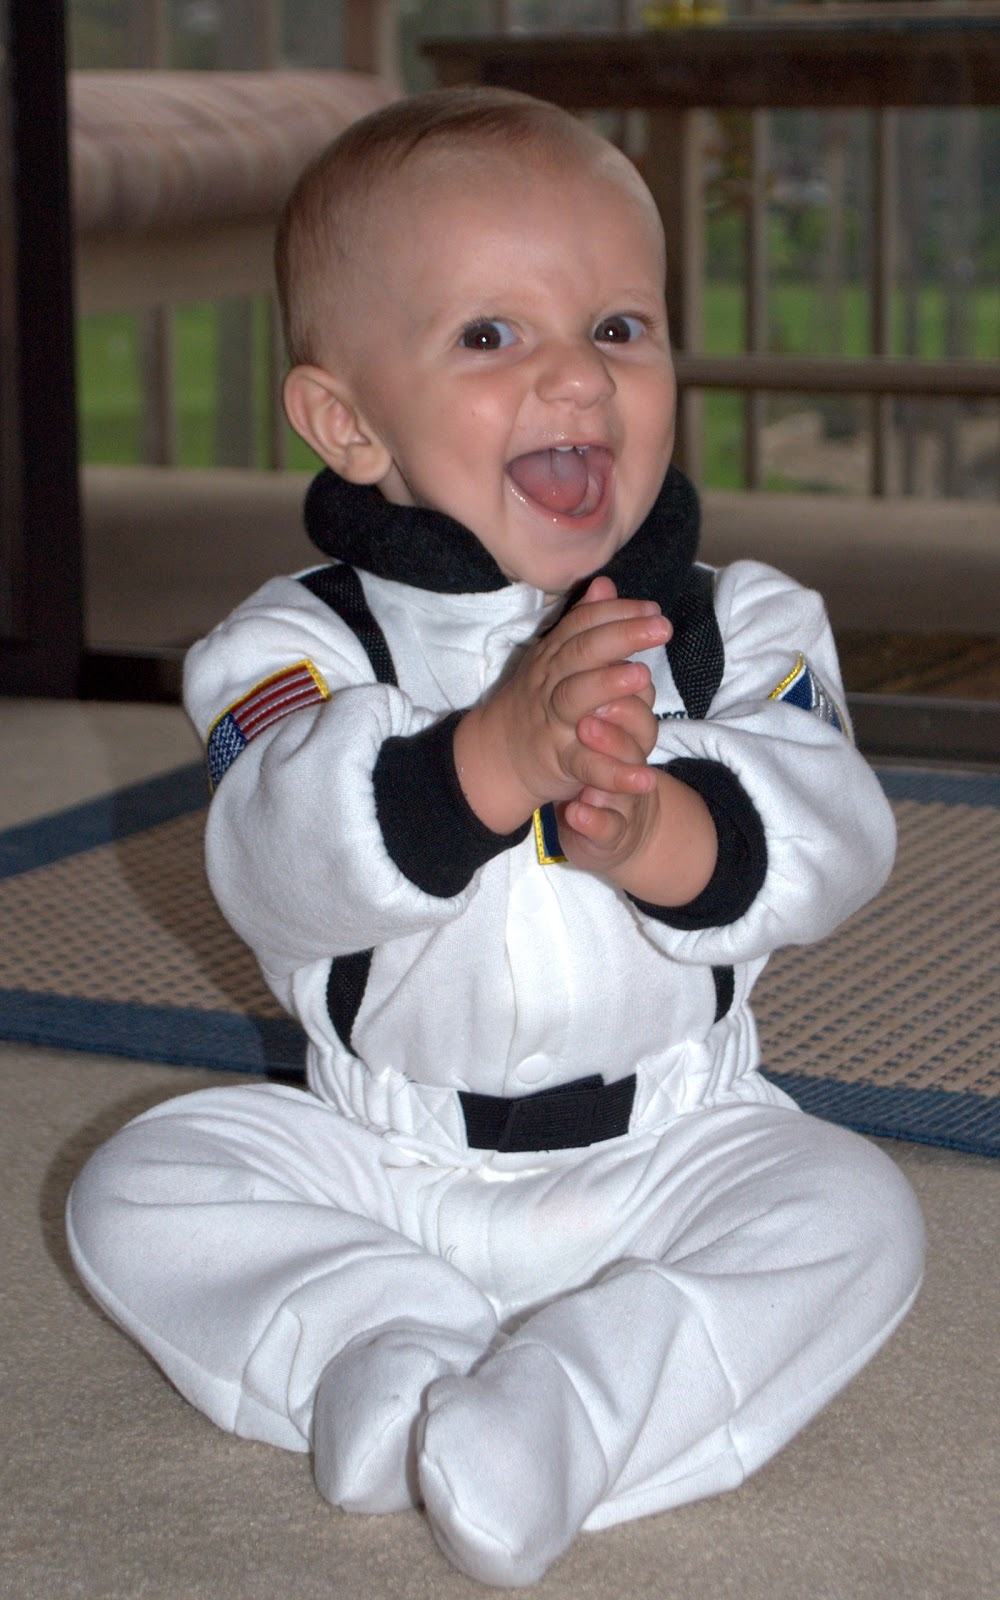 neil armstrong baby girl - photo #5